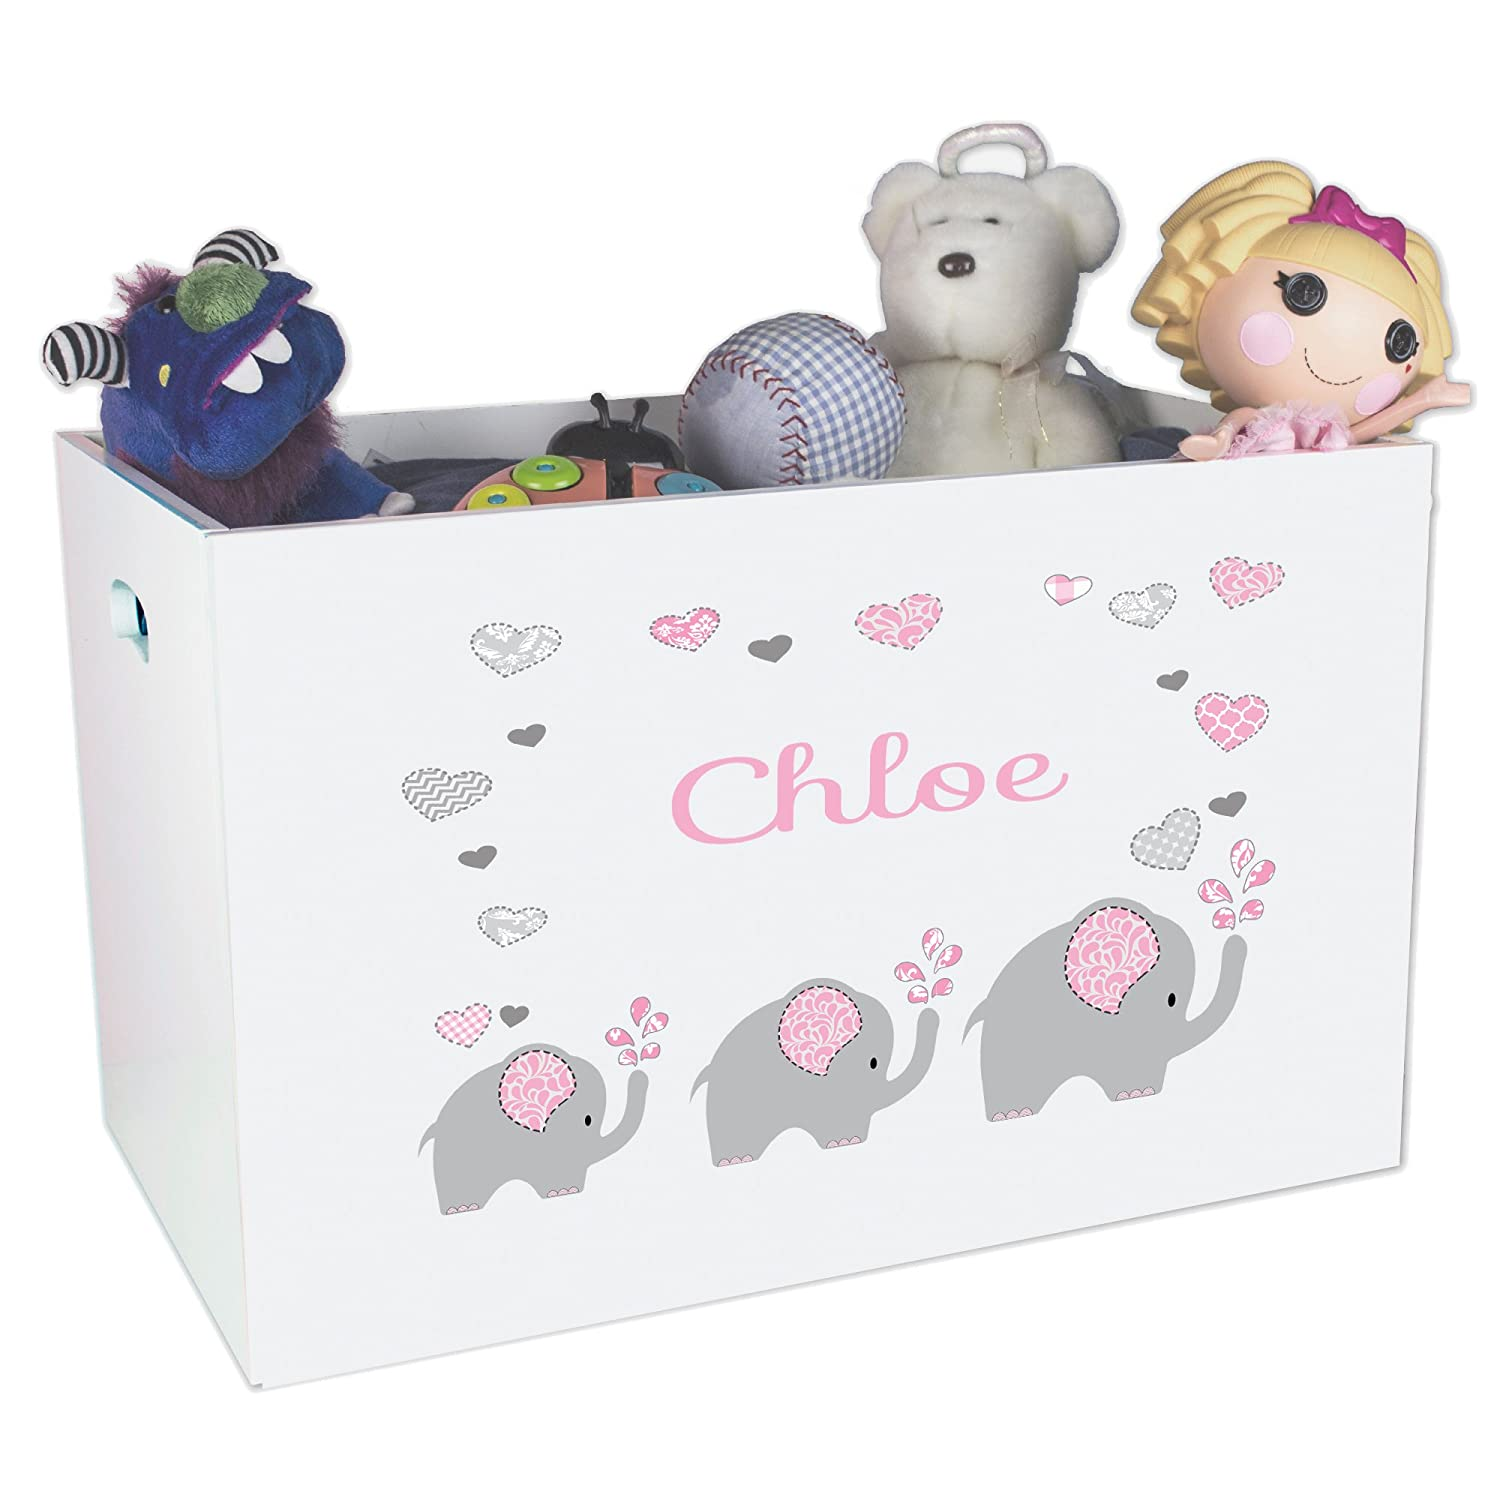 Personalized Elephant Childrens Nursery White Open Toy Box MyBambino ybin-303c